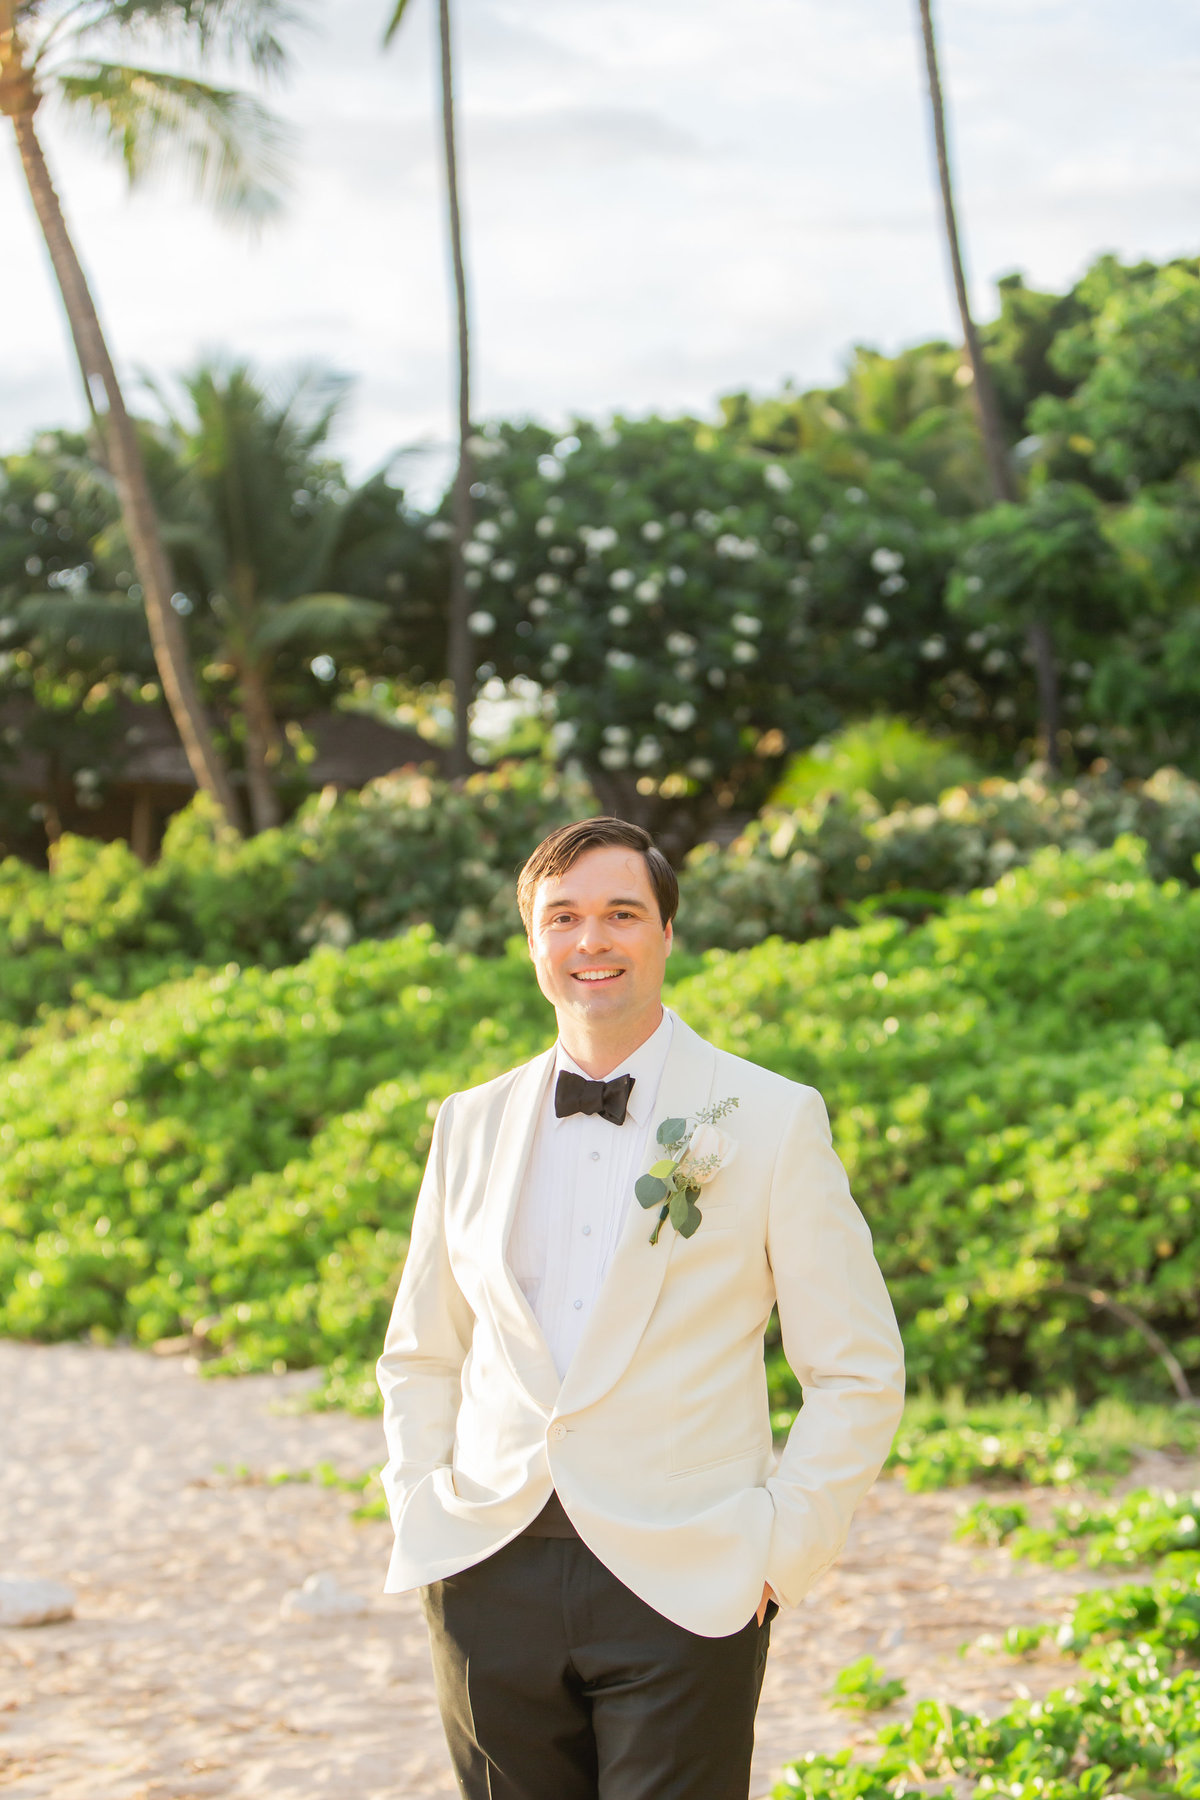 Maui venue wedding photography - groom